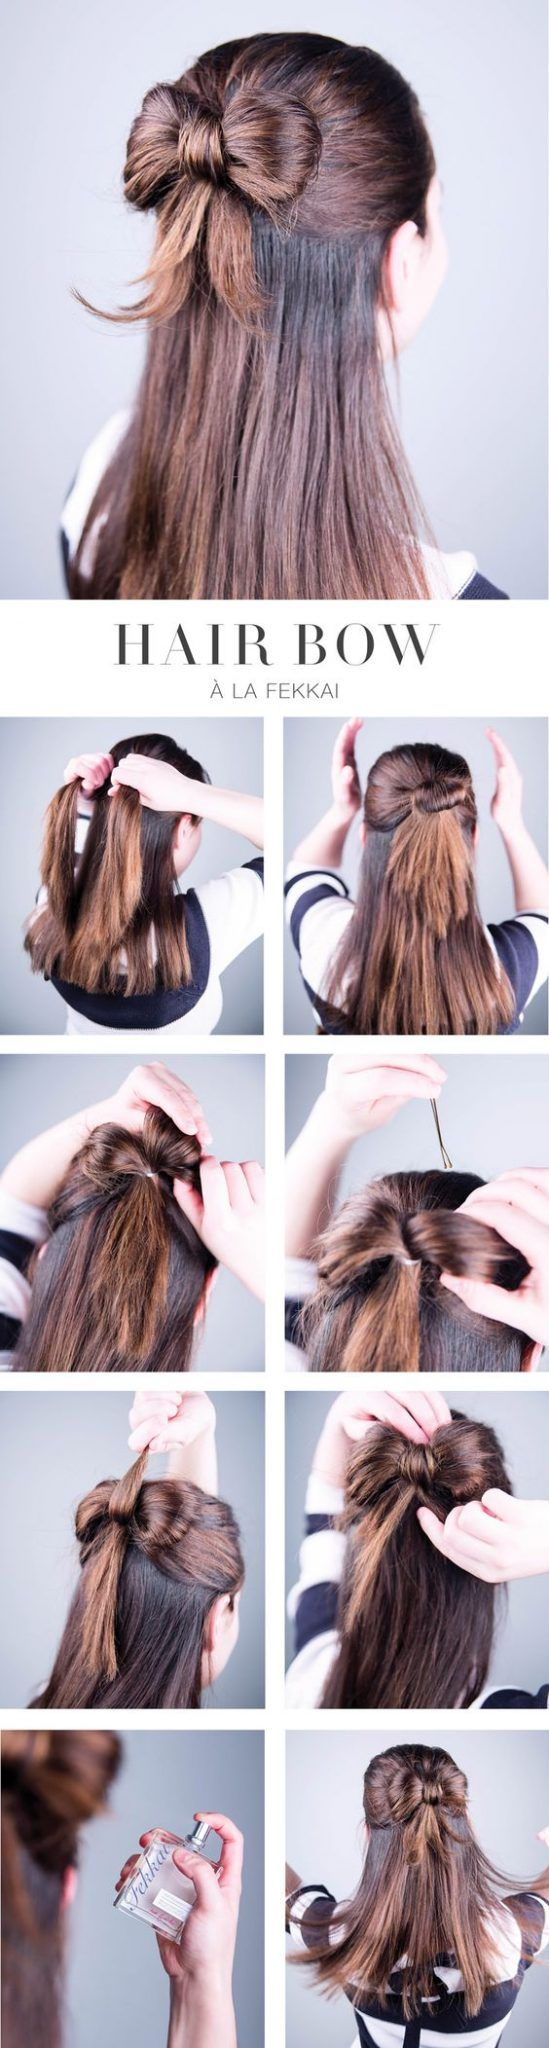 14 Bold & Unique Hairstyle Tutorials You Can Do At Home | Pinterest ...